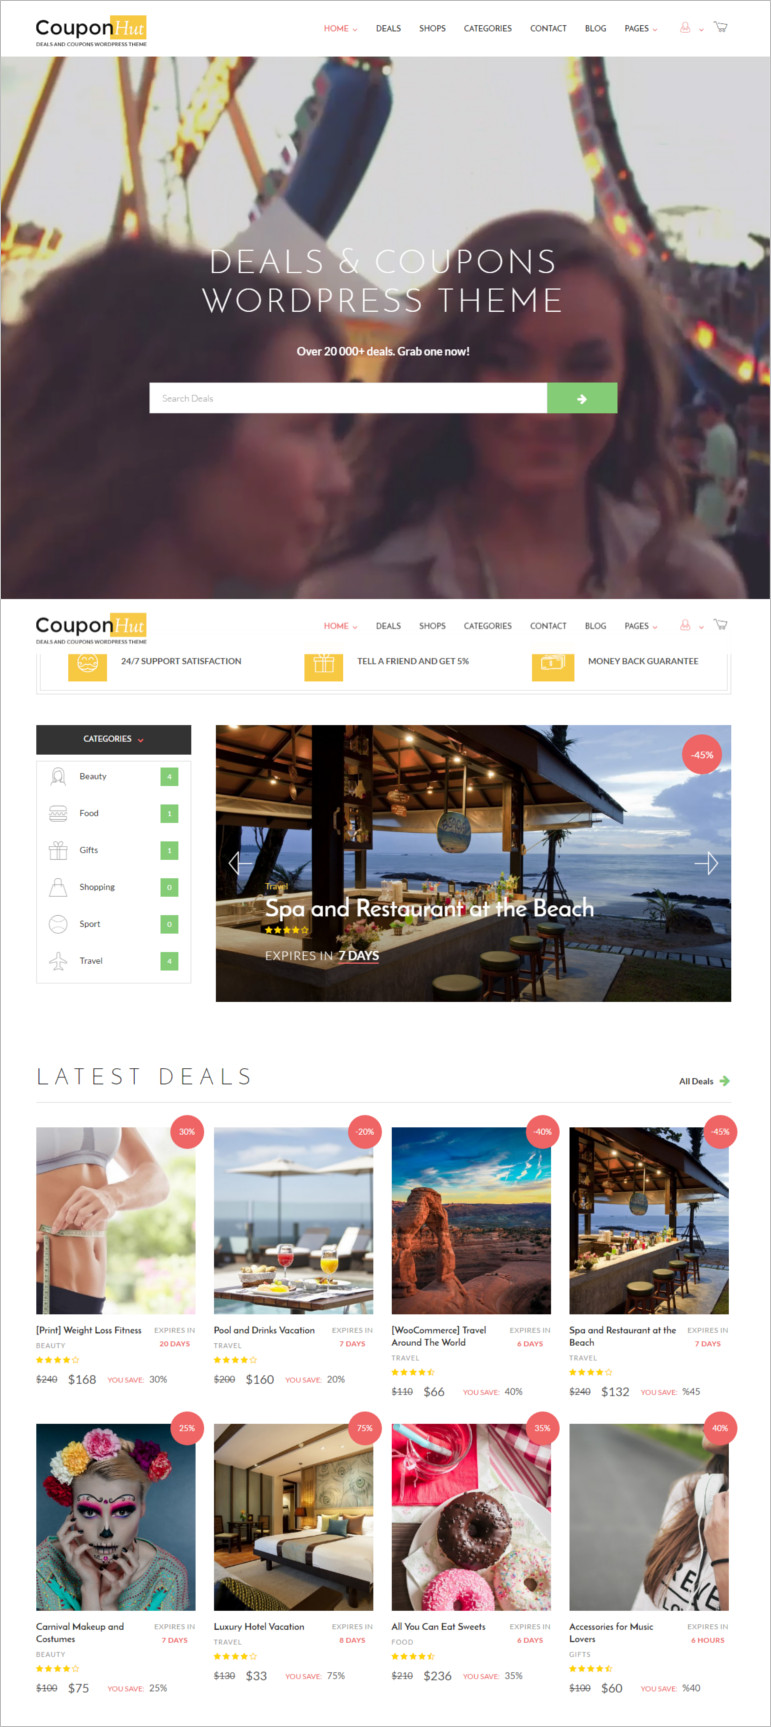 coupons-deals-wordpress-theme